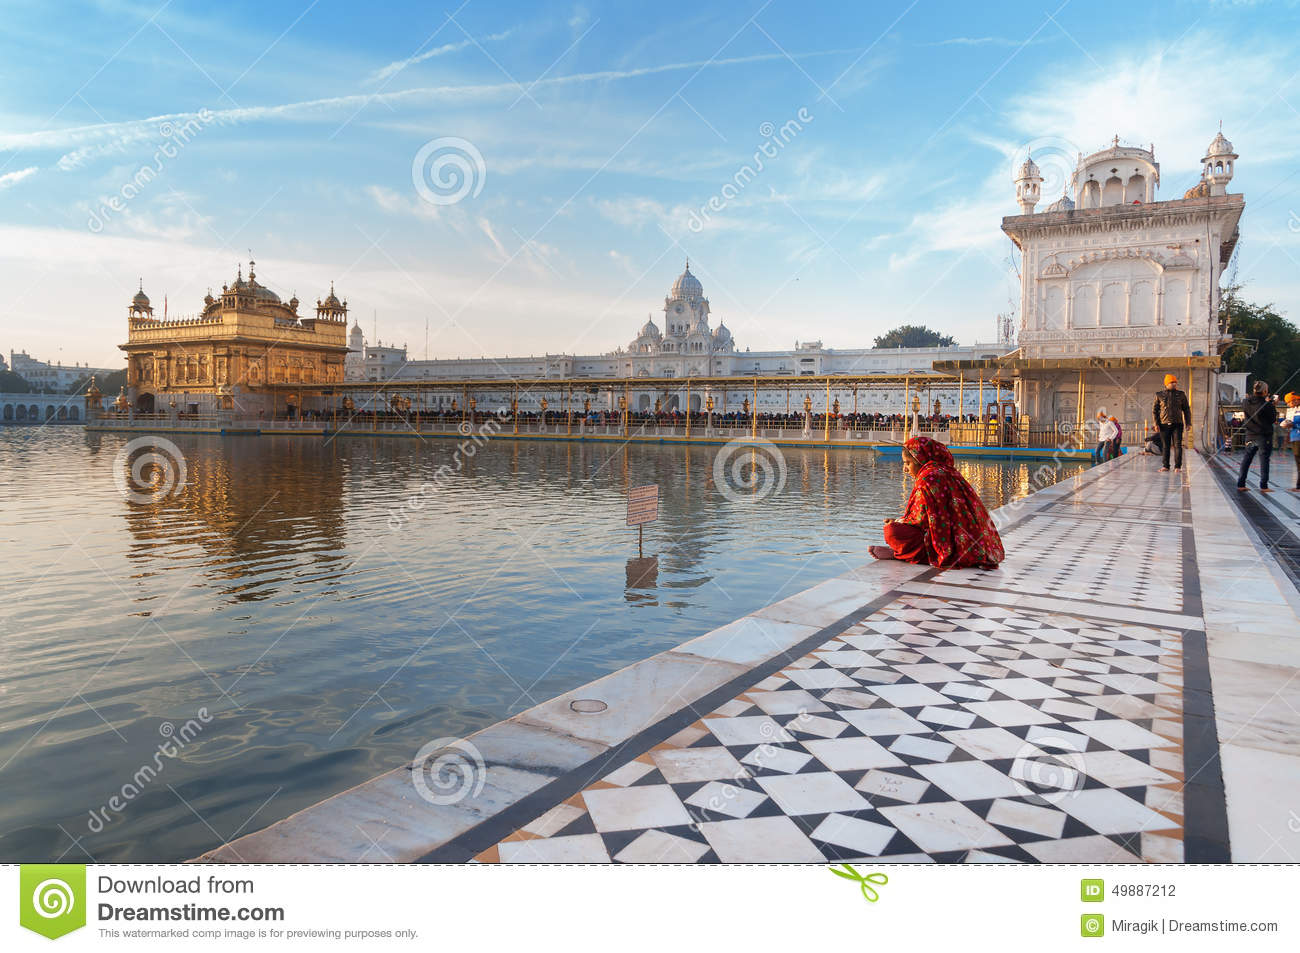 Amritsar 3d Wallpaper Woman In A Red Saree Sits And Pray In Golden Temple In The